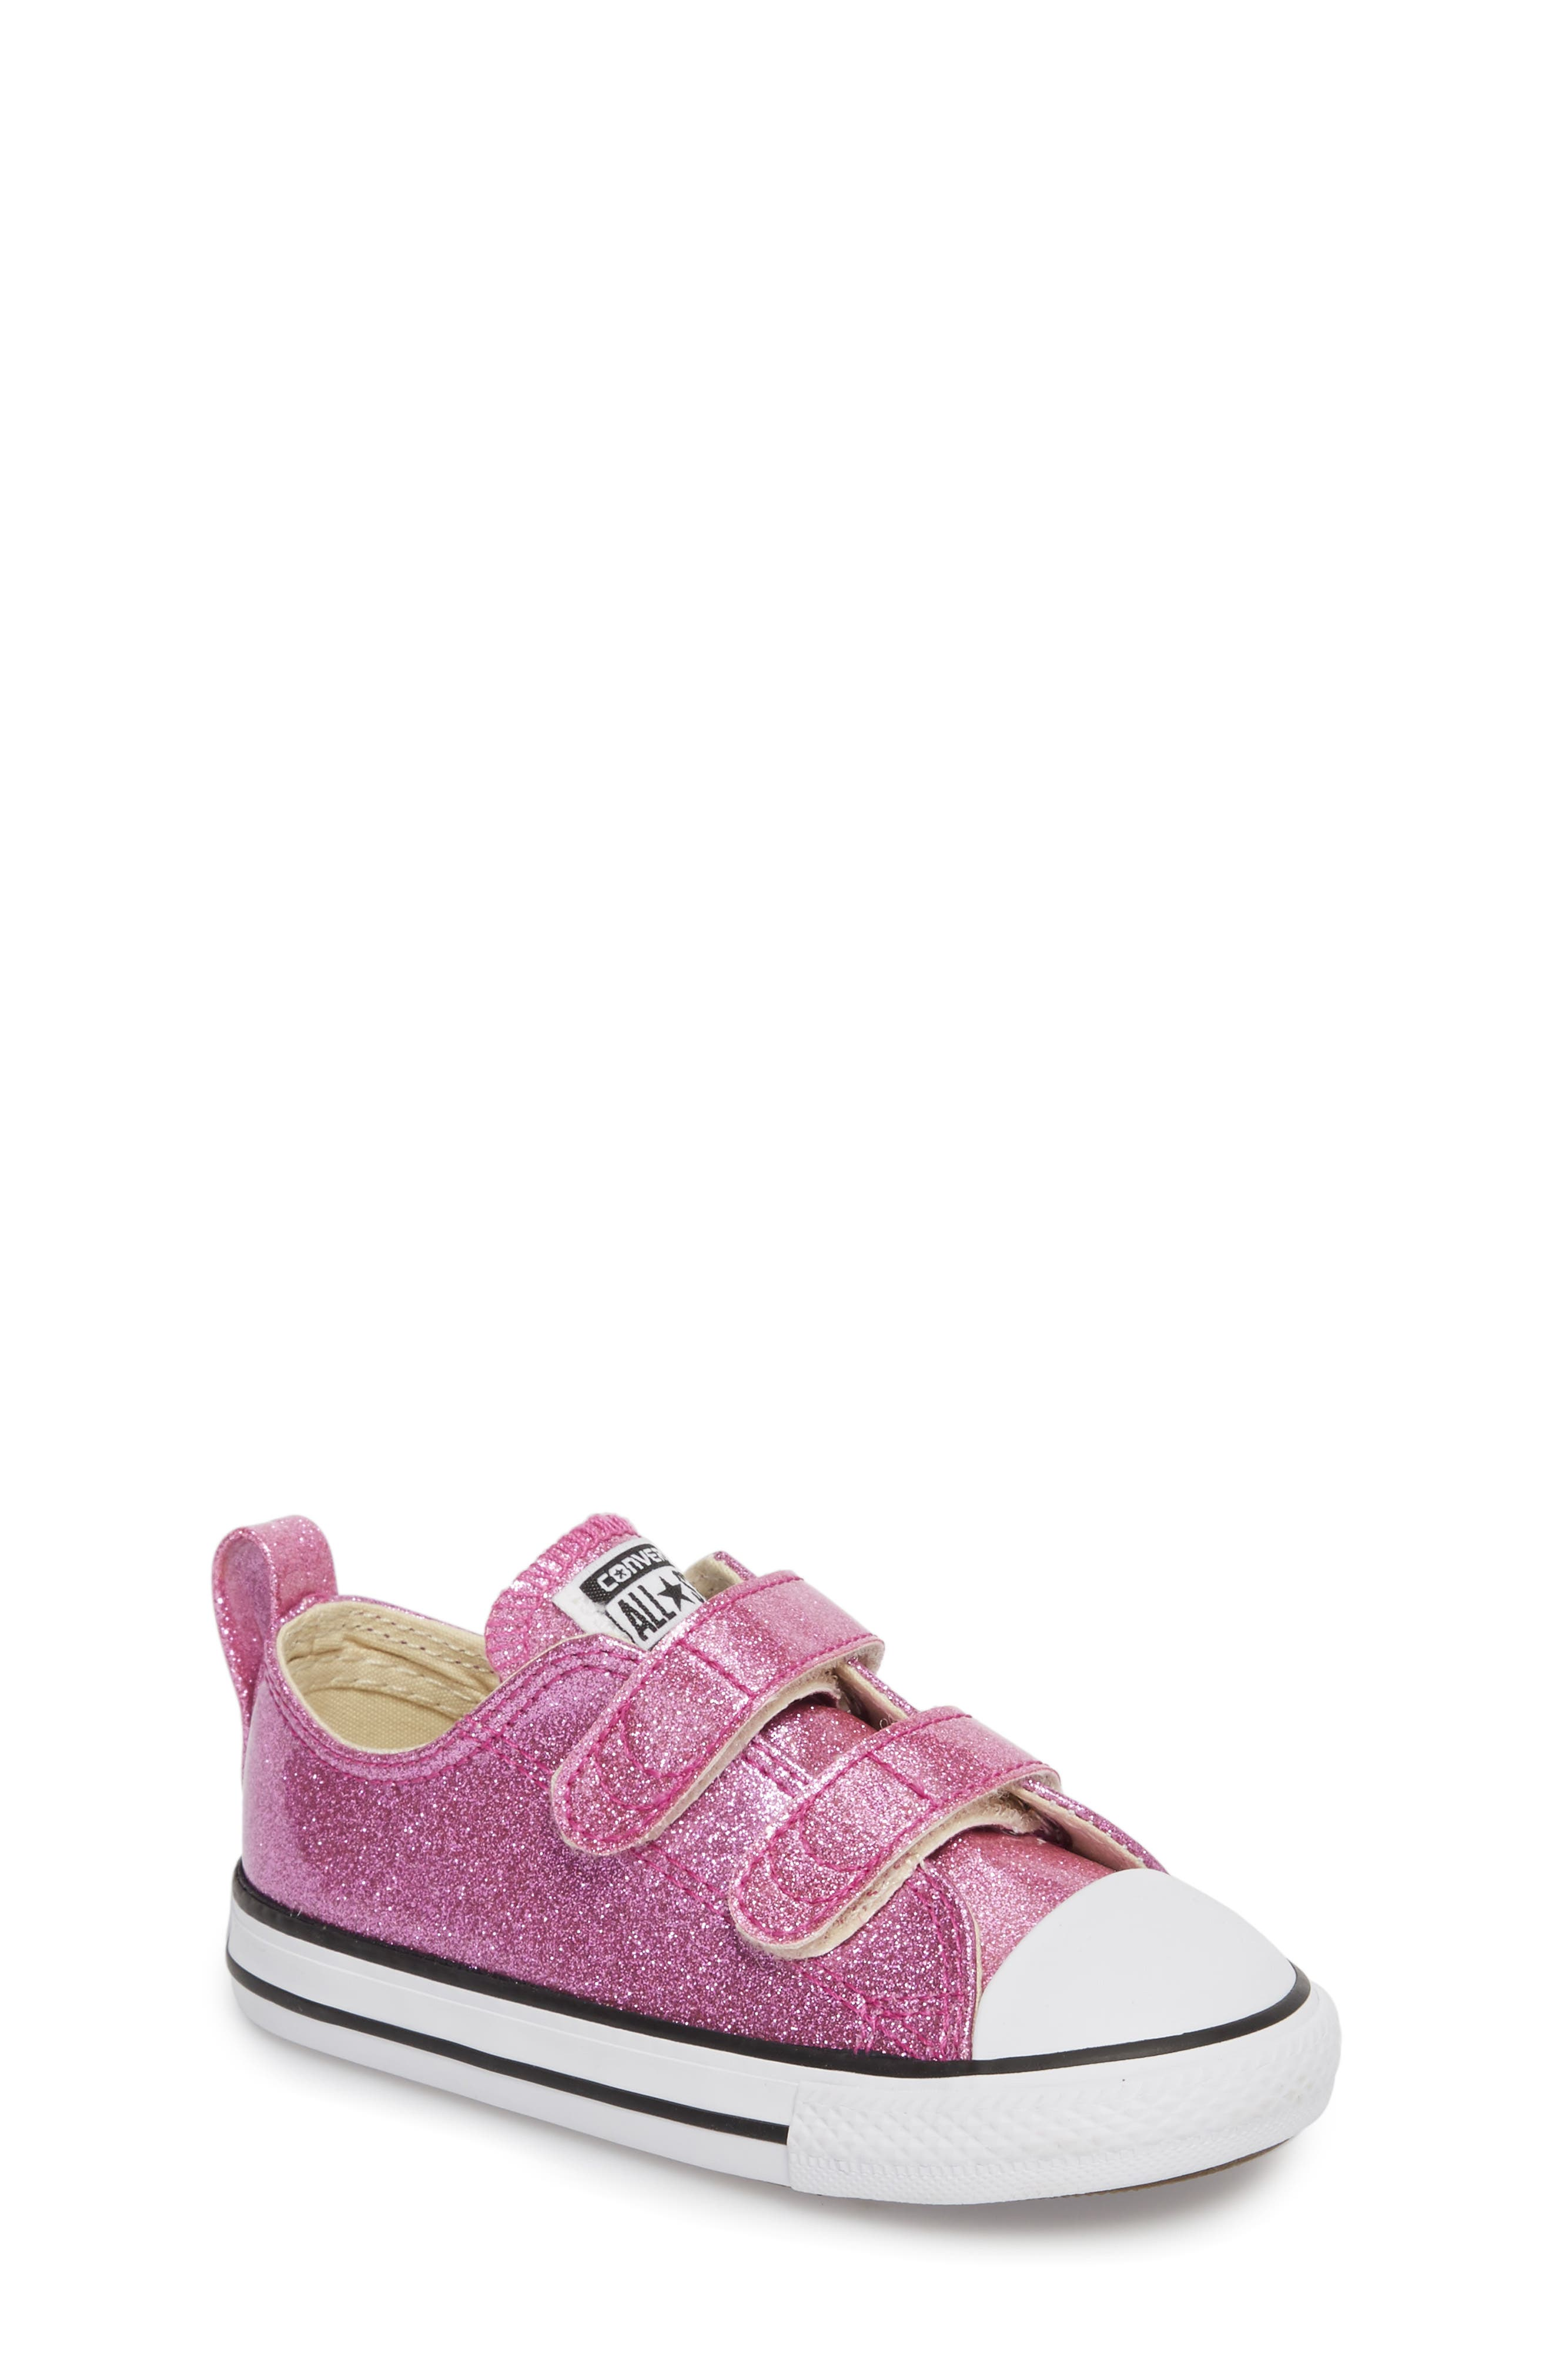 All Star<sup>®</sup> Seasonal Glitter Sneaker,                         Main,                         color, Bright Violet